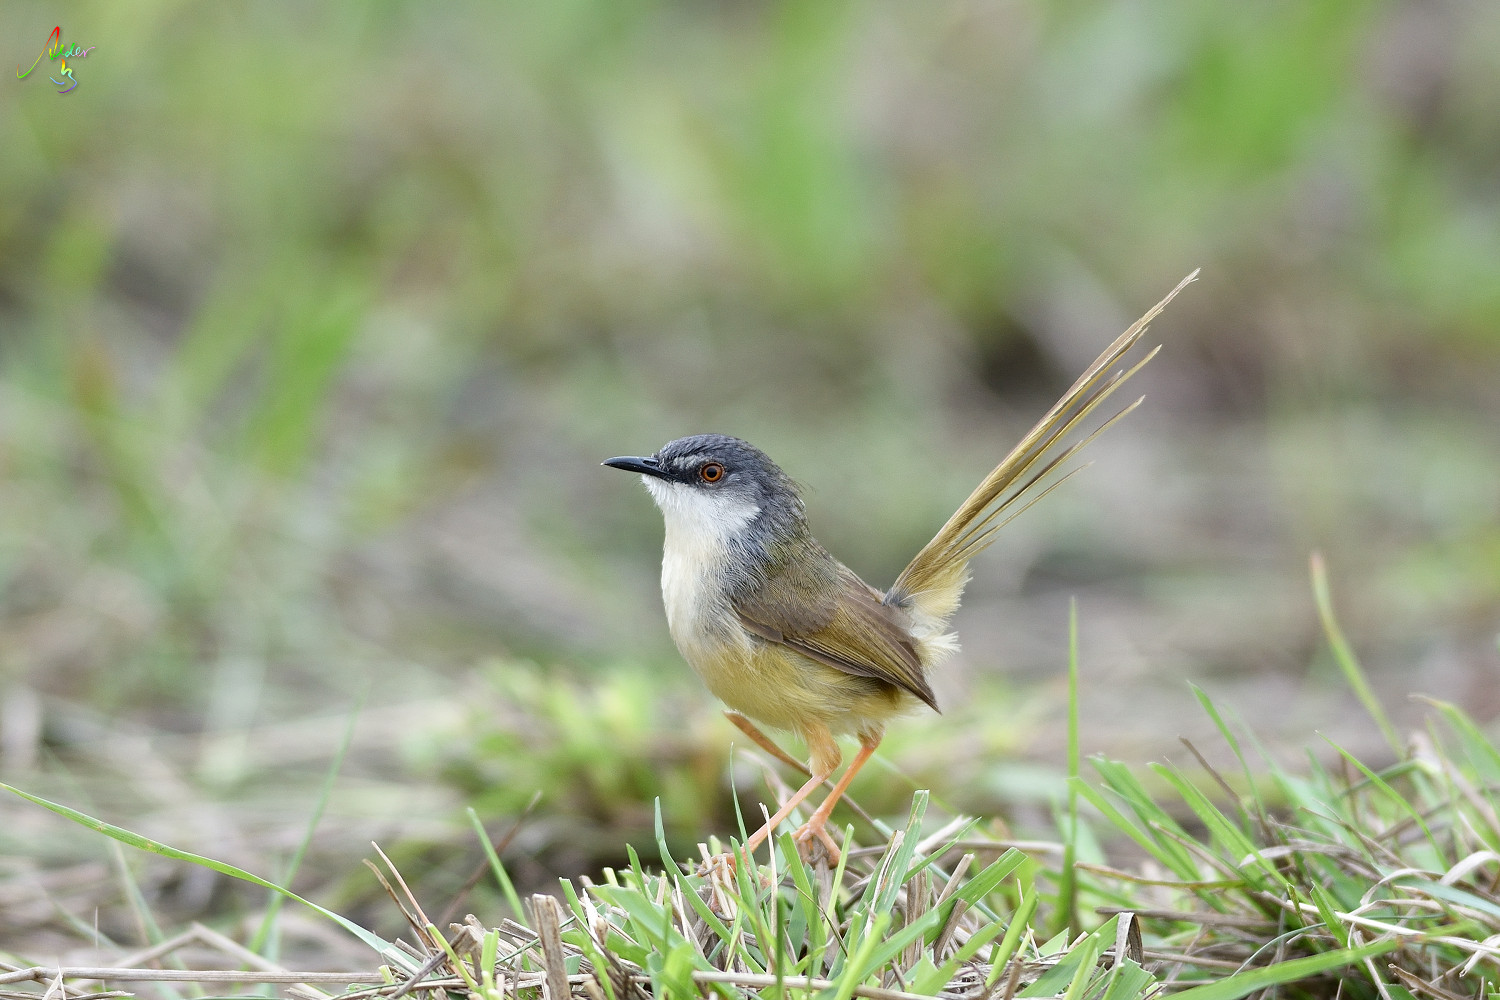 Yellow-bellied_Prinia_3495